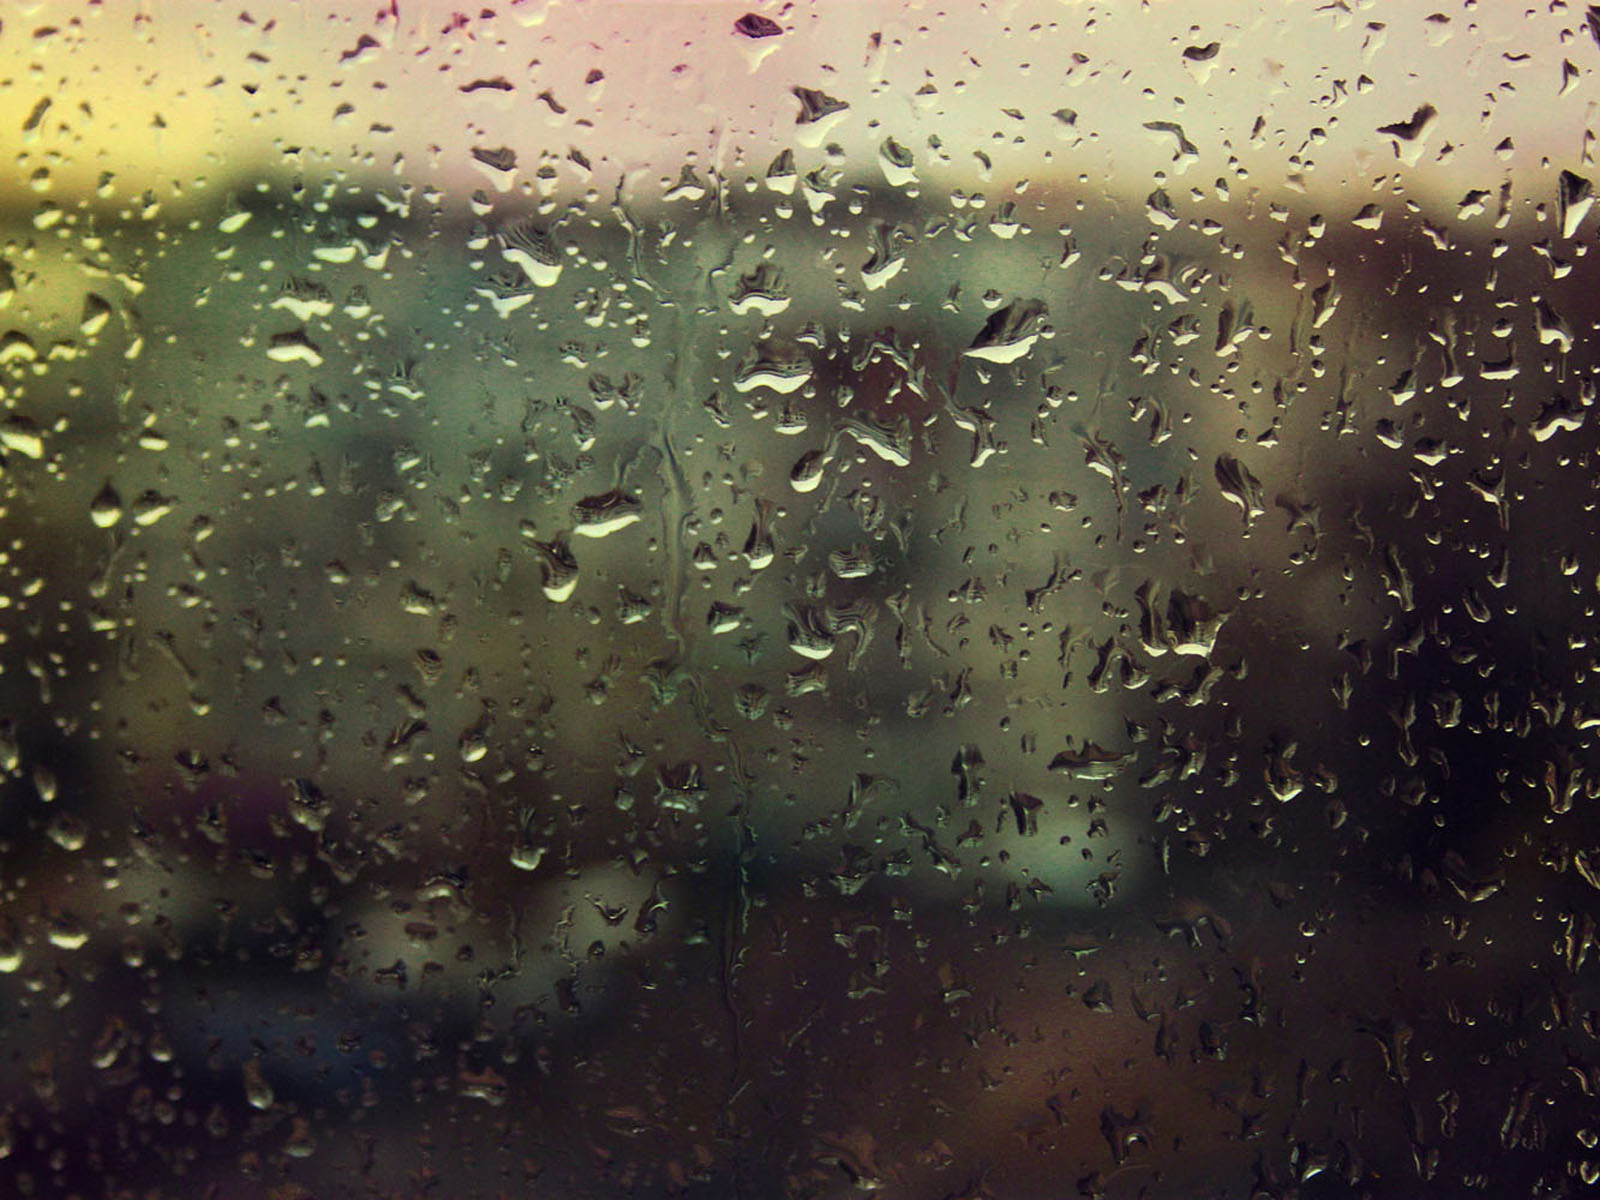 Rainy Day Wallpapers Animated